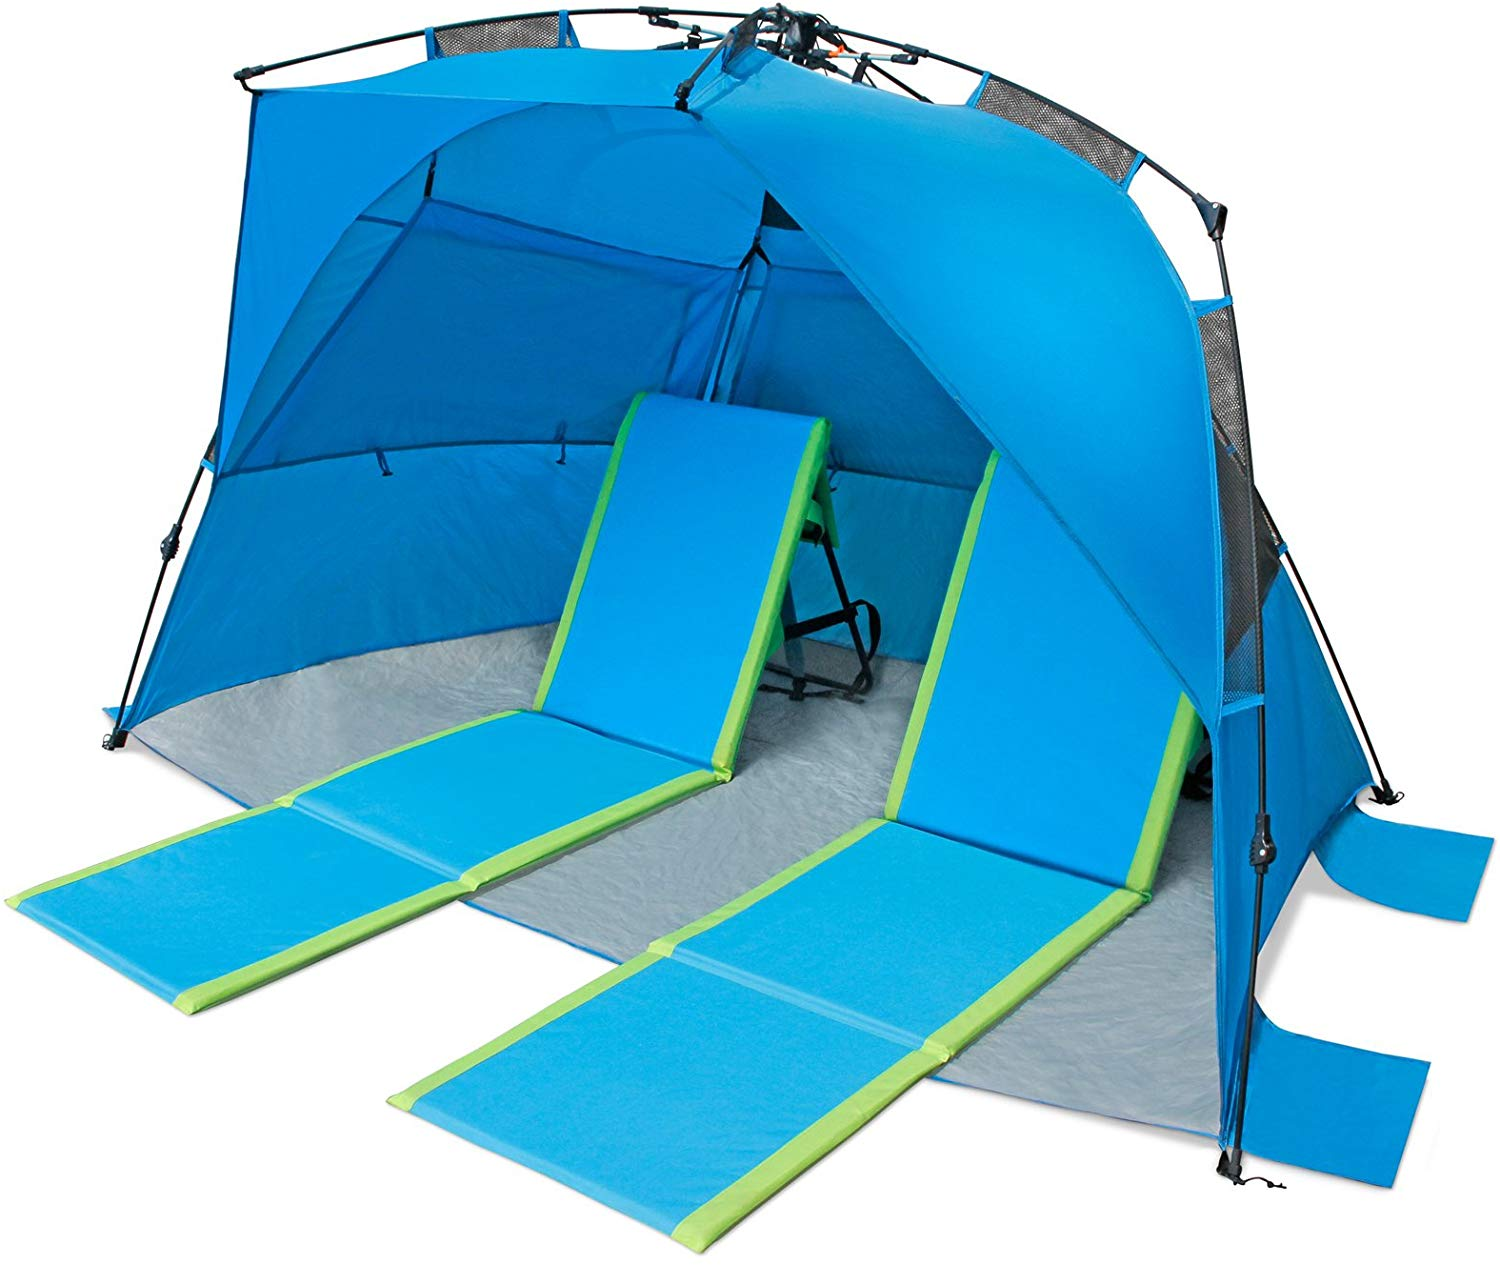 7 Best Pop Up Beach Tents for 2020